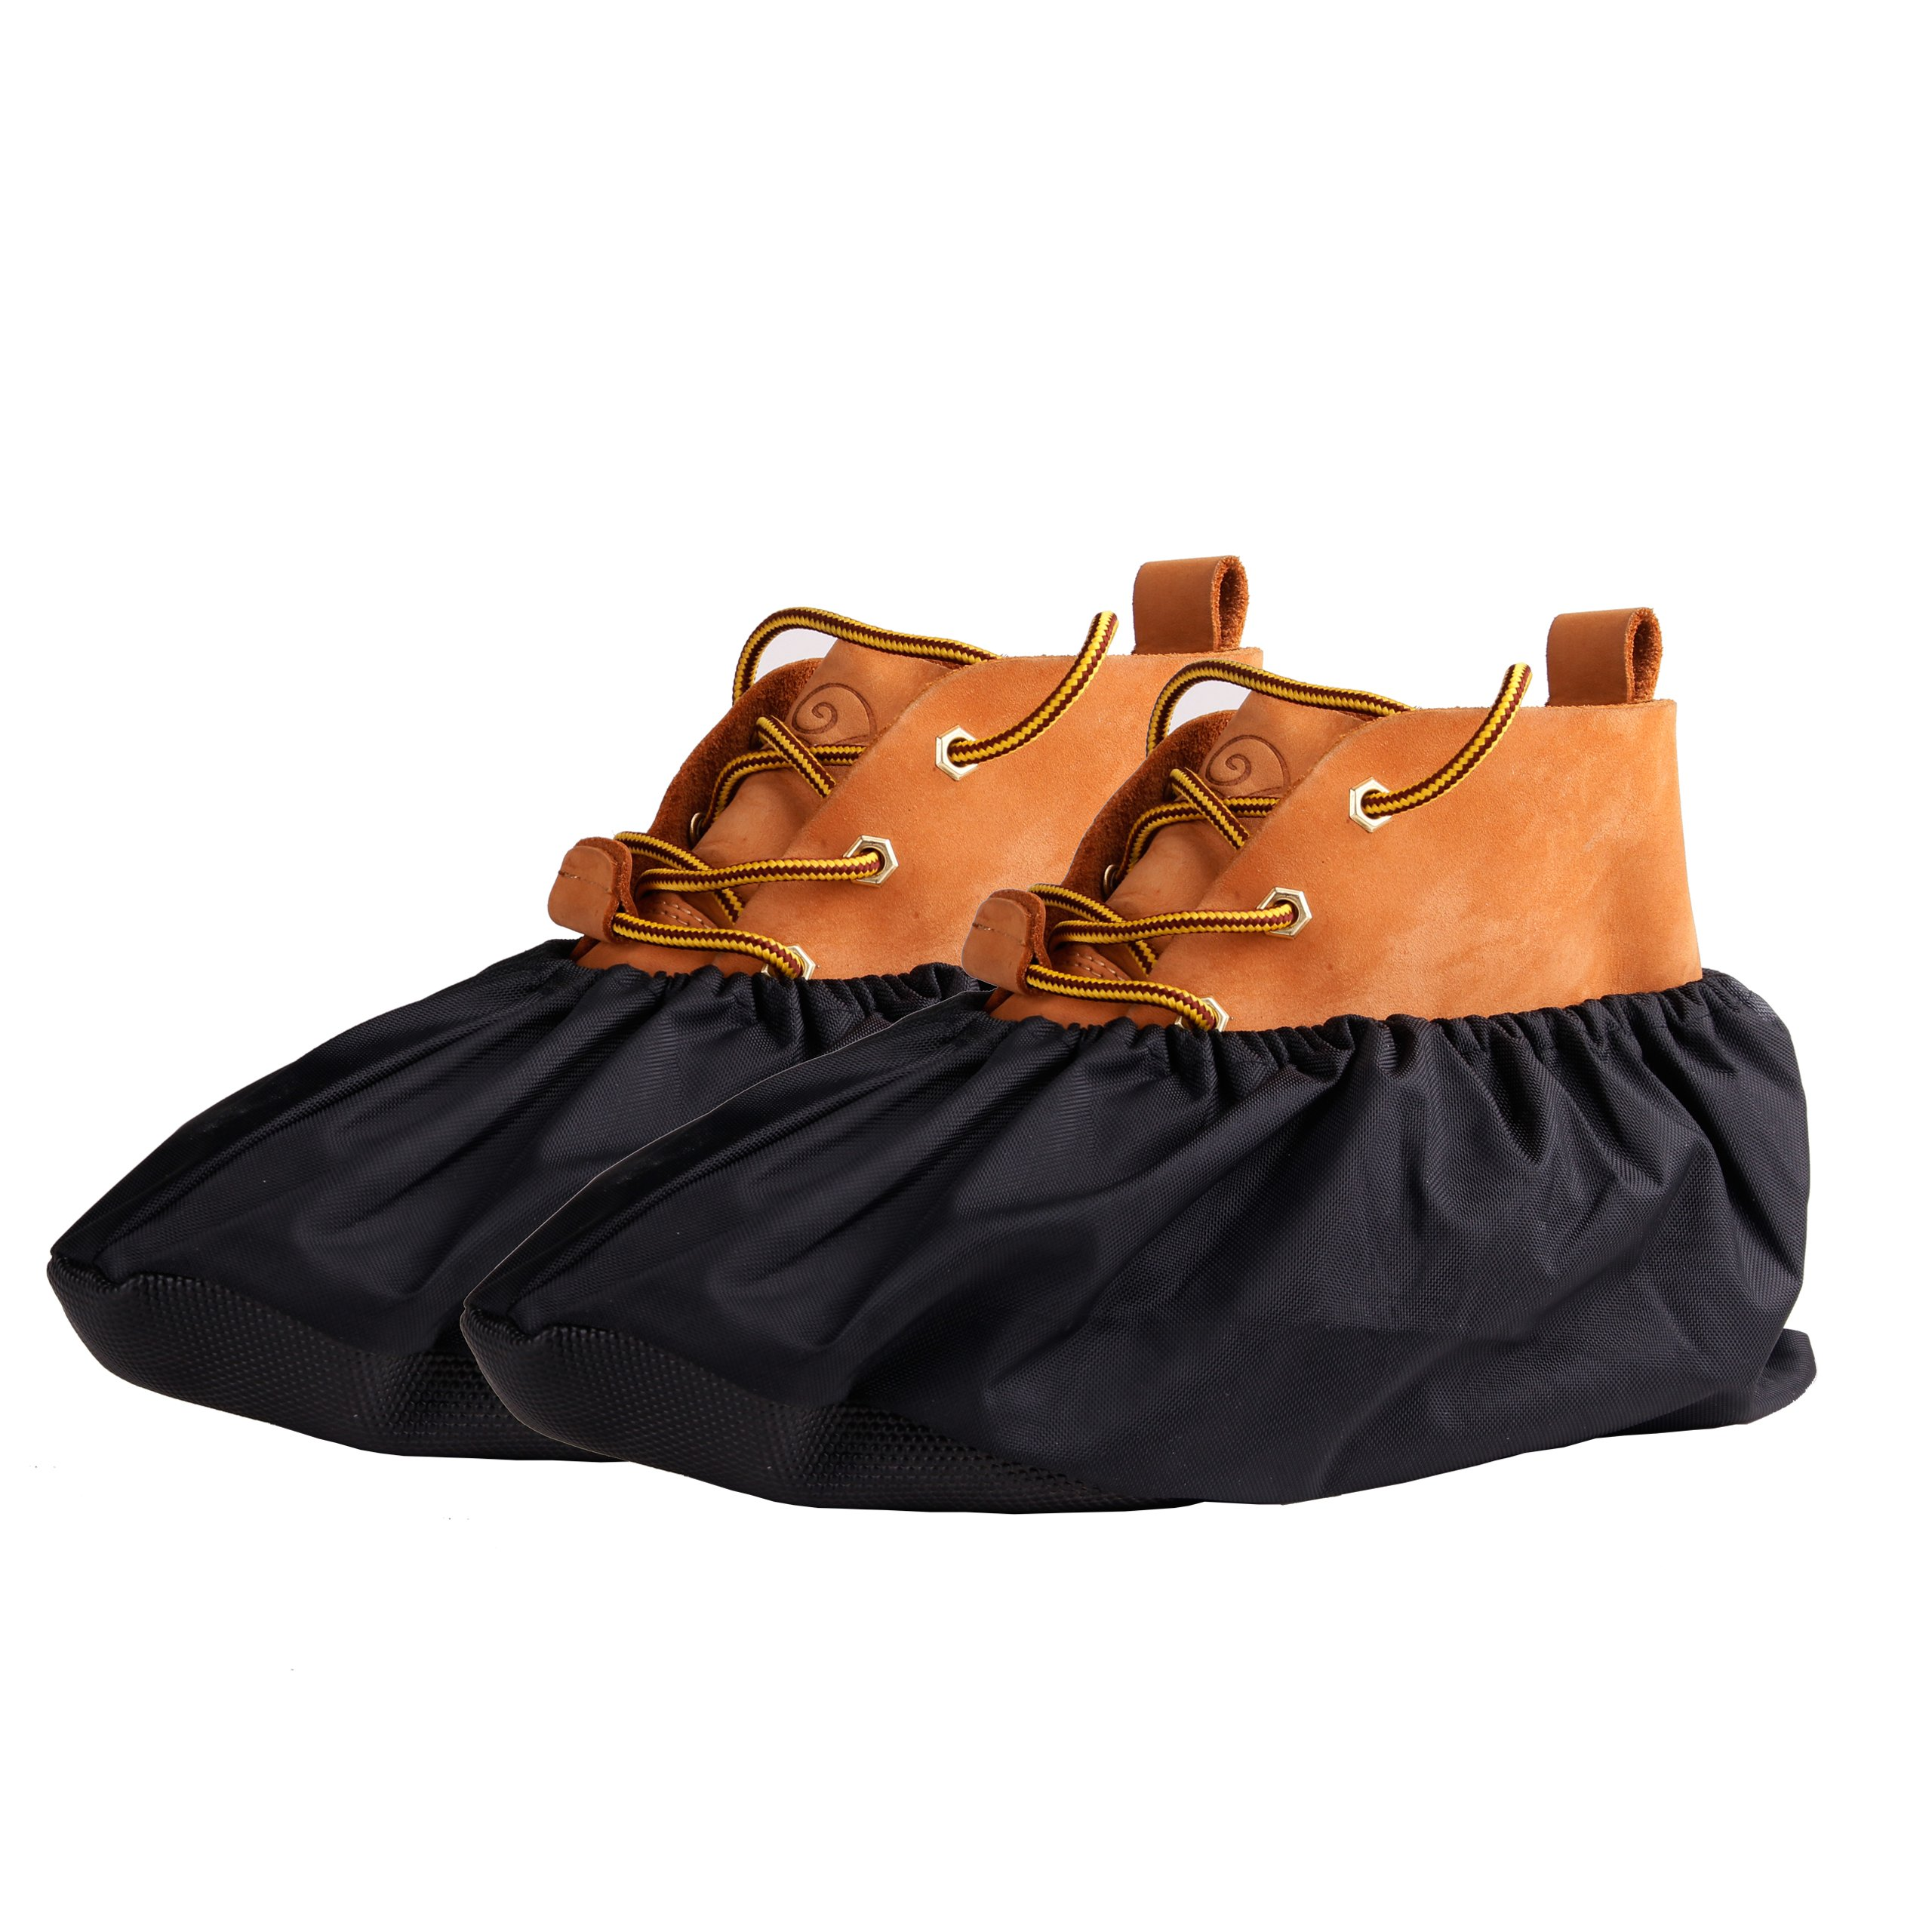 MagicDesign Reusable Shoes and Boot Covers for Contractors,Premium and Durable Heavy Duty Water Resistant Material, Large by MagicalDesign (Image #1)